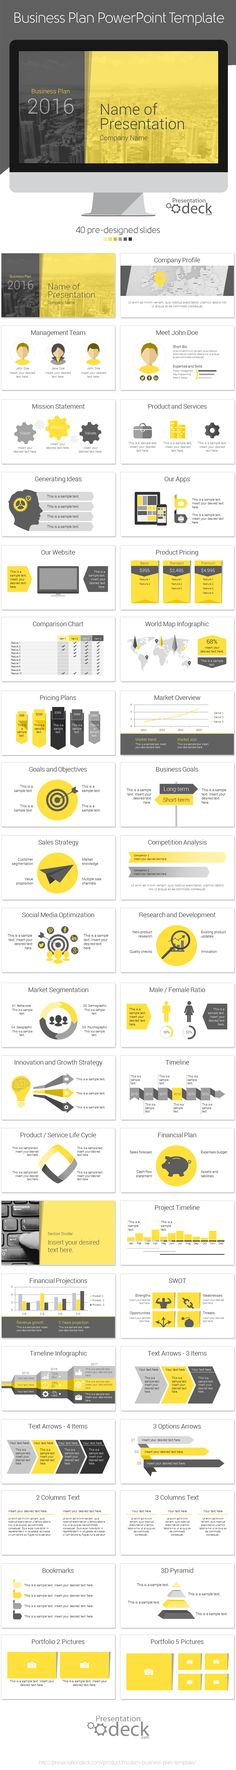 Modern Business Plan PowerPoint Template on Behance